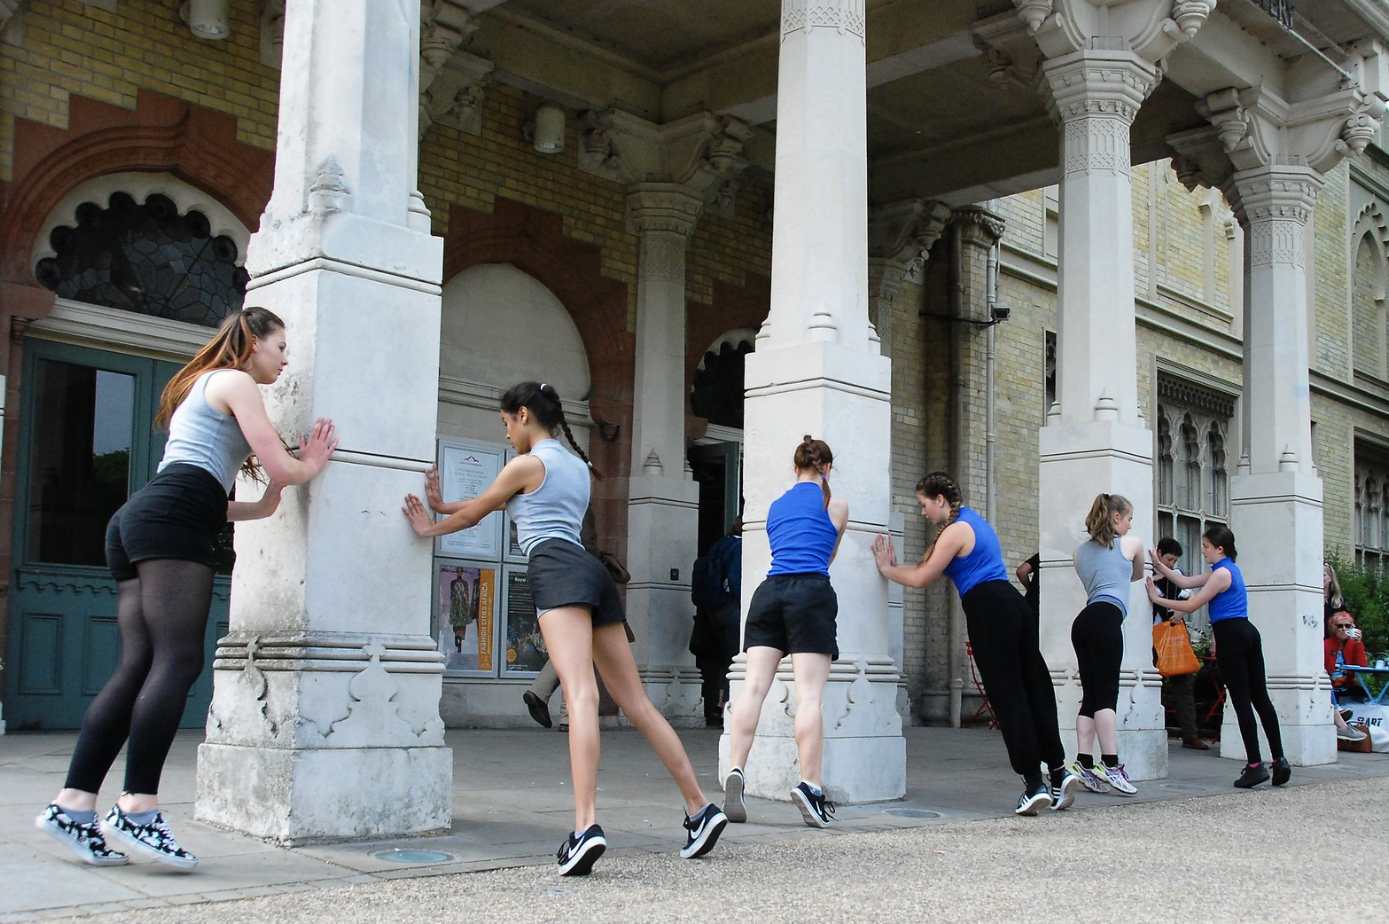 Dancers exercising outdoors.